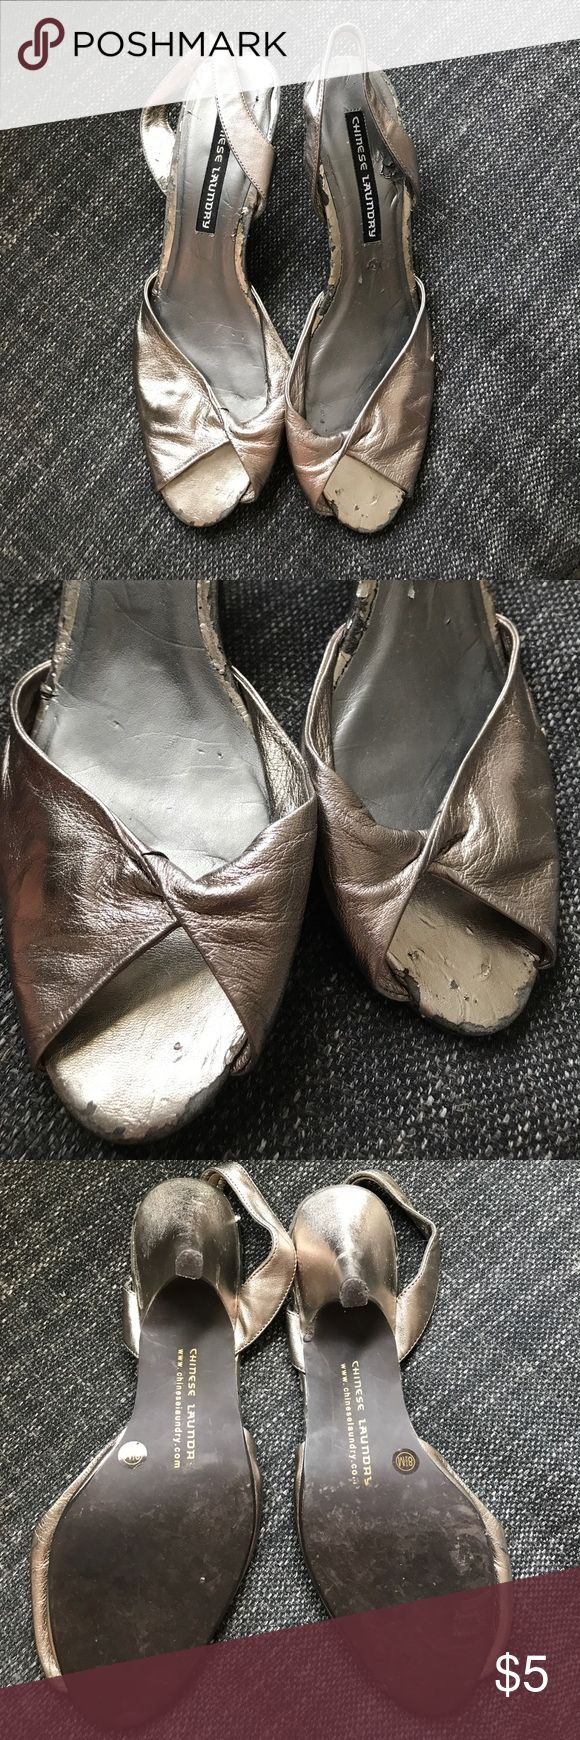 Silver peep toe kitten heels A nice basic peep toe kitten heel shoe.  The foil is coming off the insole of the shoe but the leather is still in tact.  The sole of the shoe is in good condition.  These is some scuff marks.  Still has a lot of life left in them. Chinese Laundry Shoes Heels